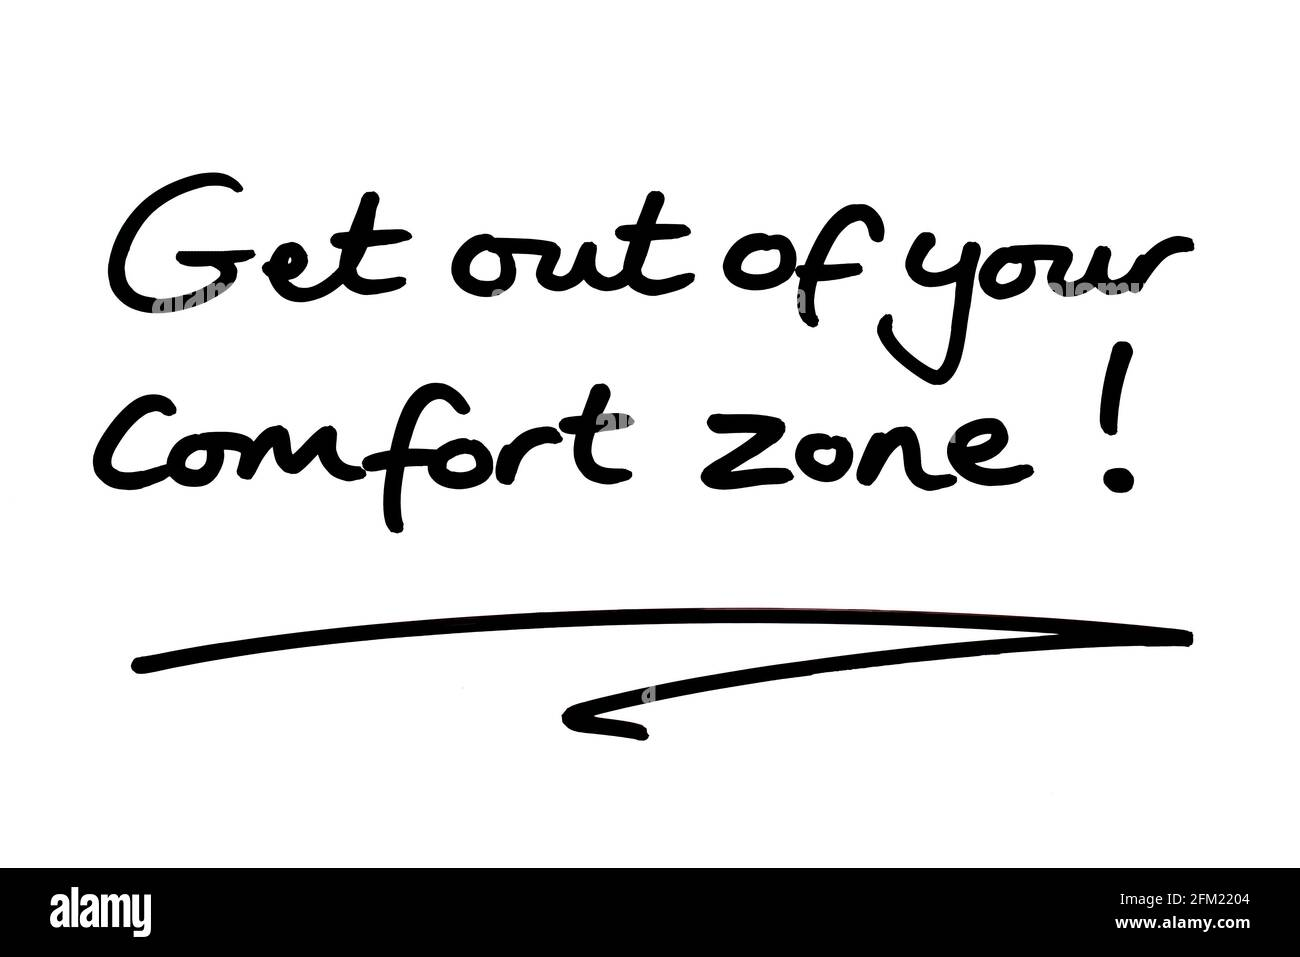 Get out of your comfort zone! handwritten on a white background. Stock Photo